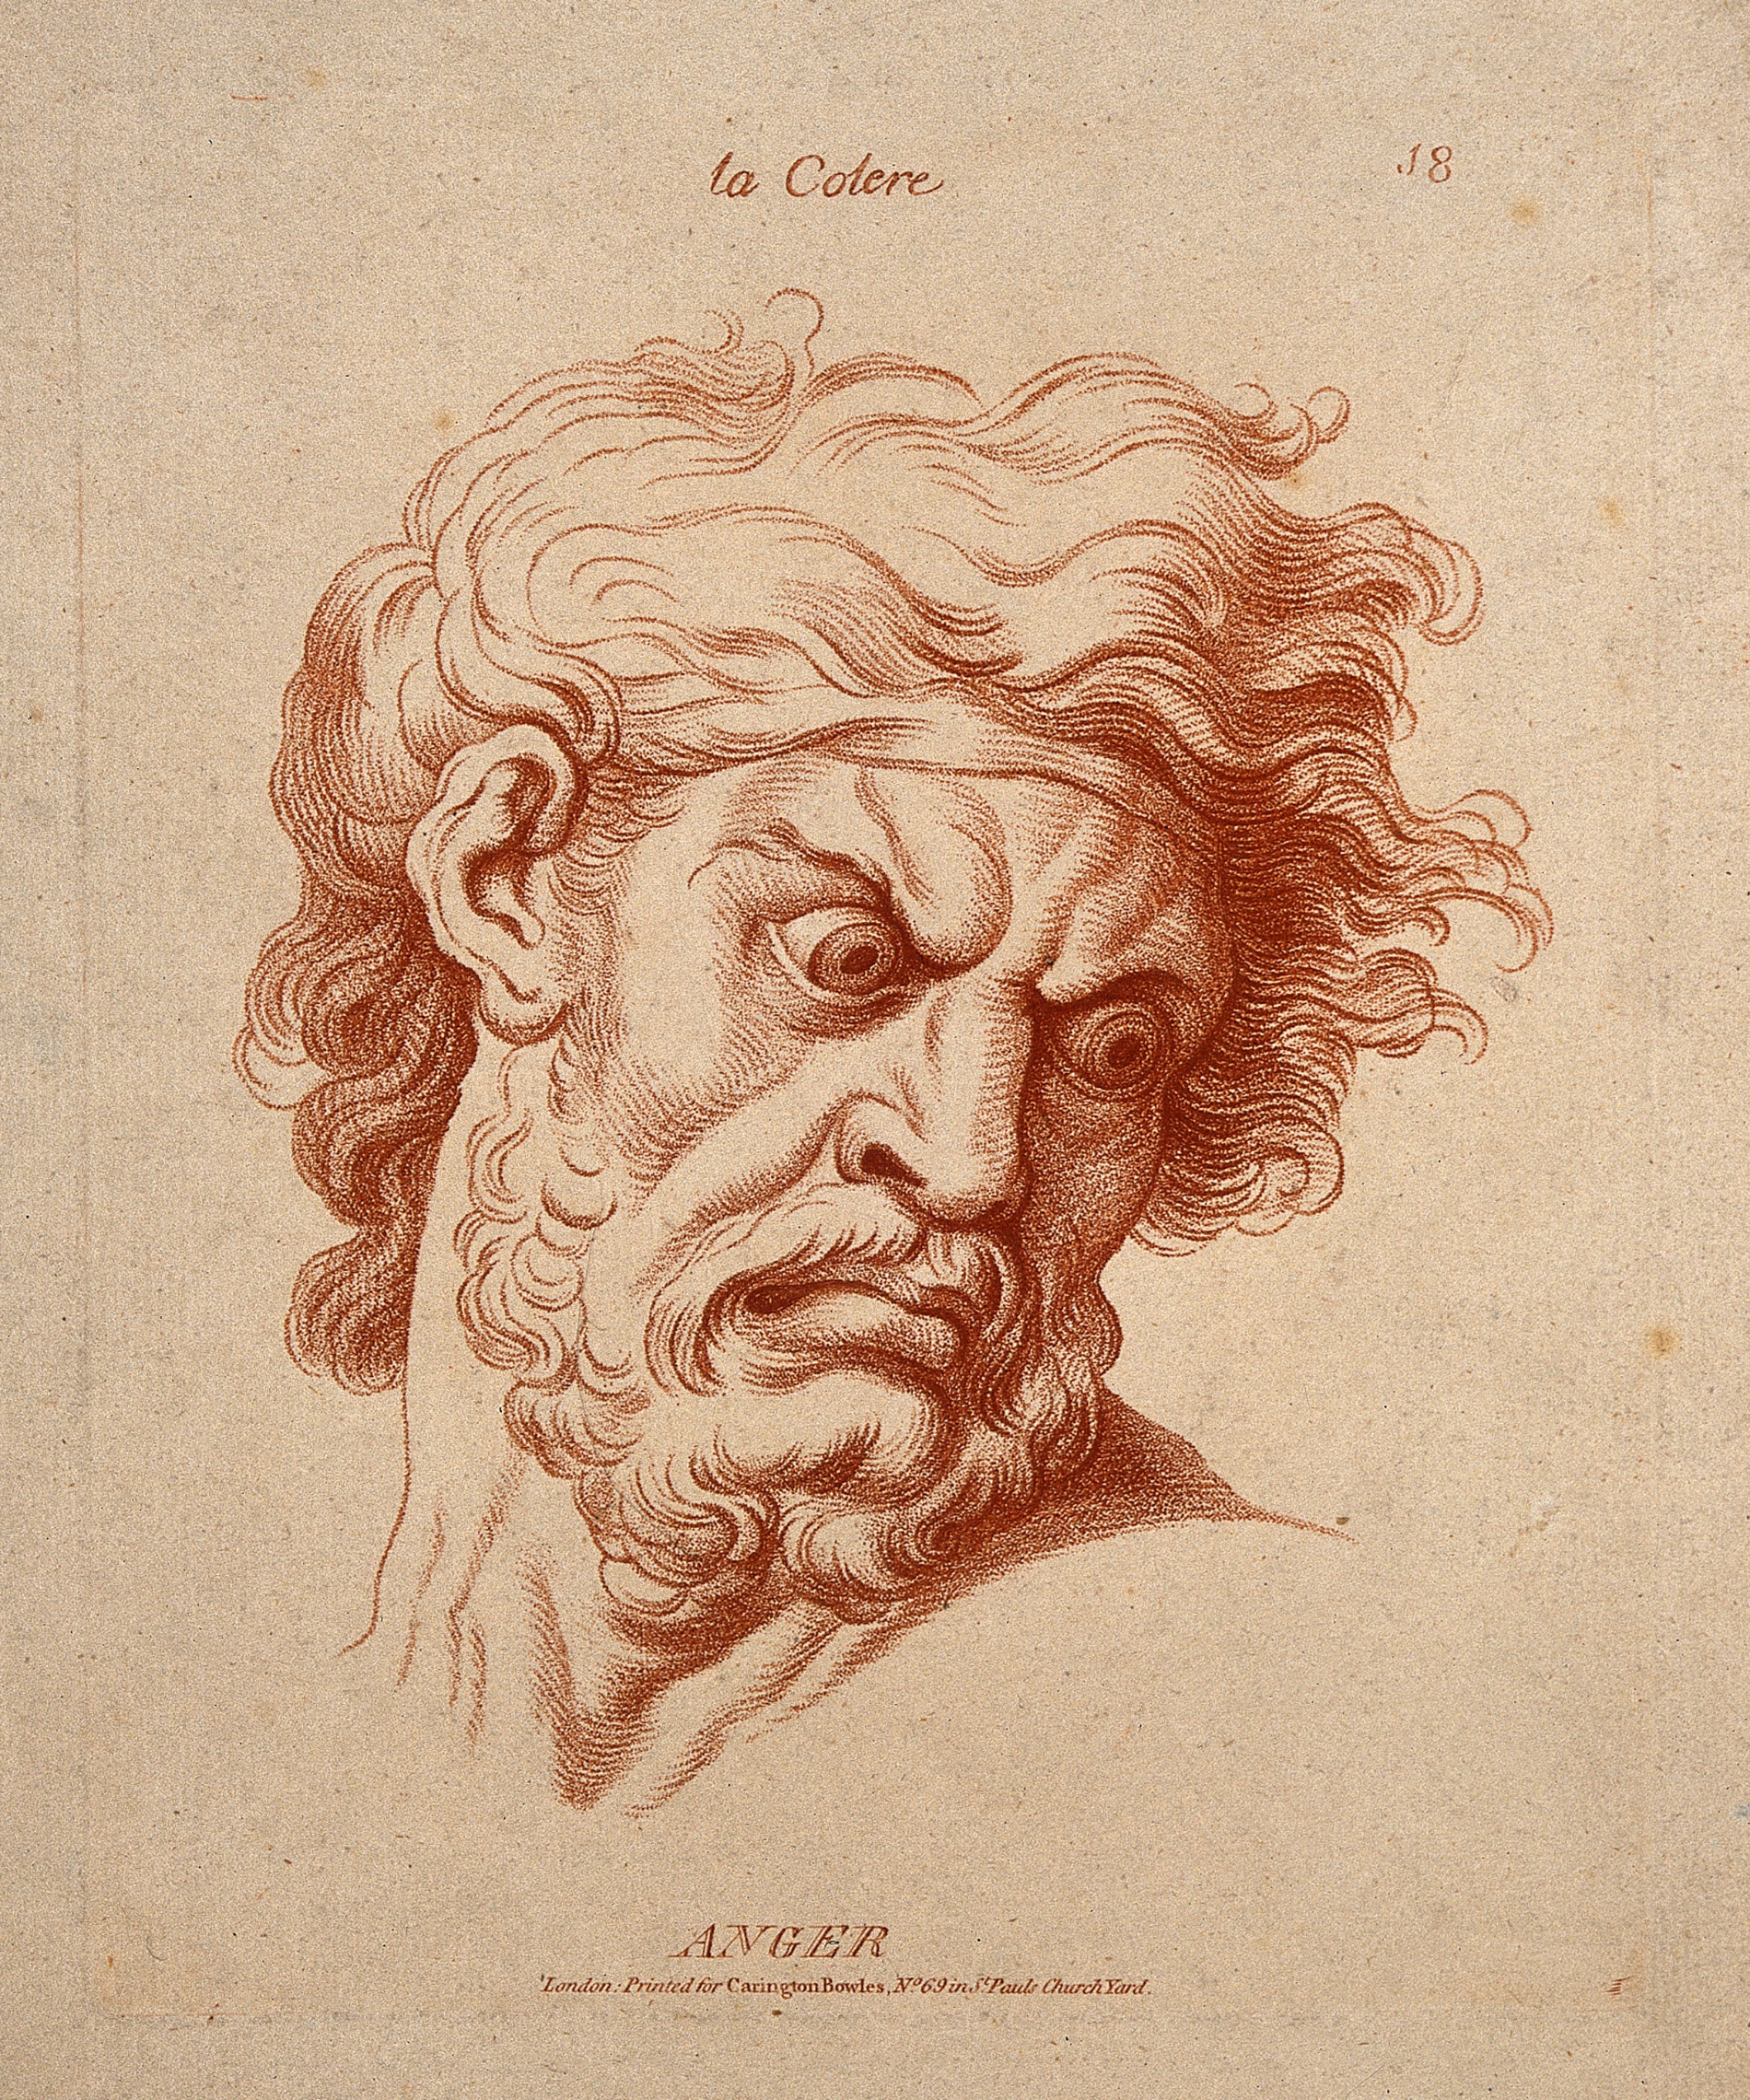 The_face_of_a_bearded_man_expressing_anger._Etching_in_the_c_Wellcome_V0009342.jpg